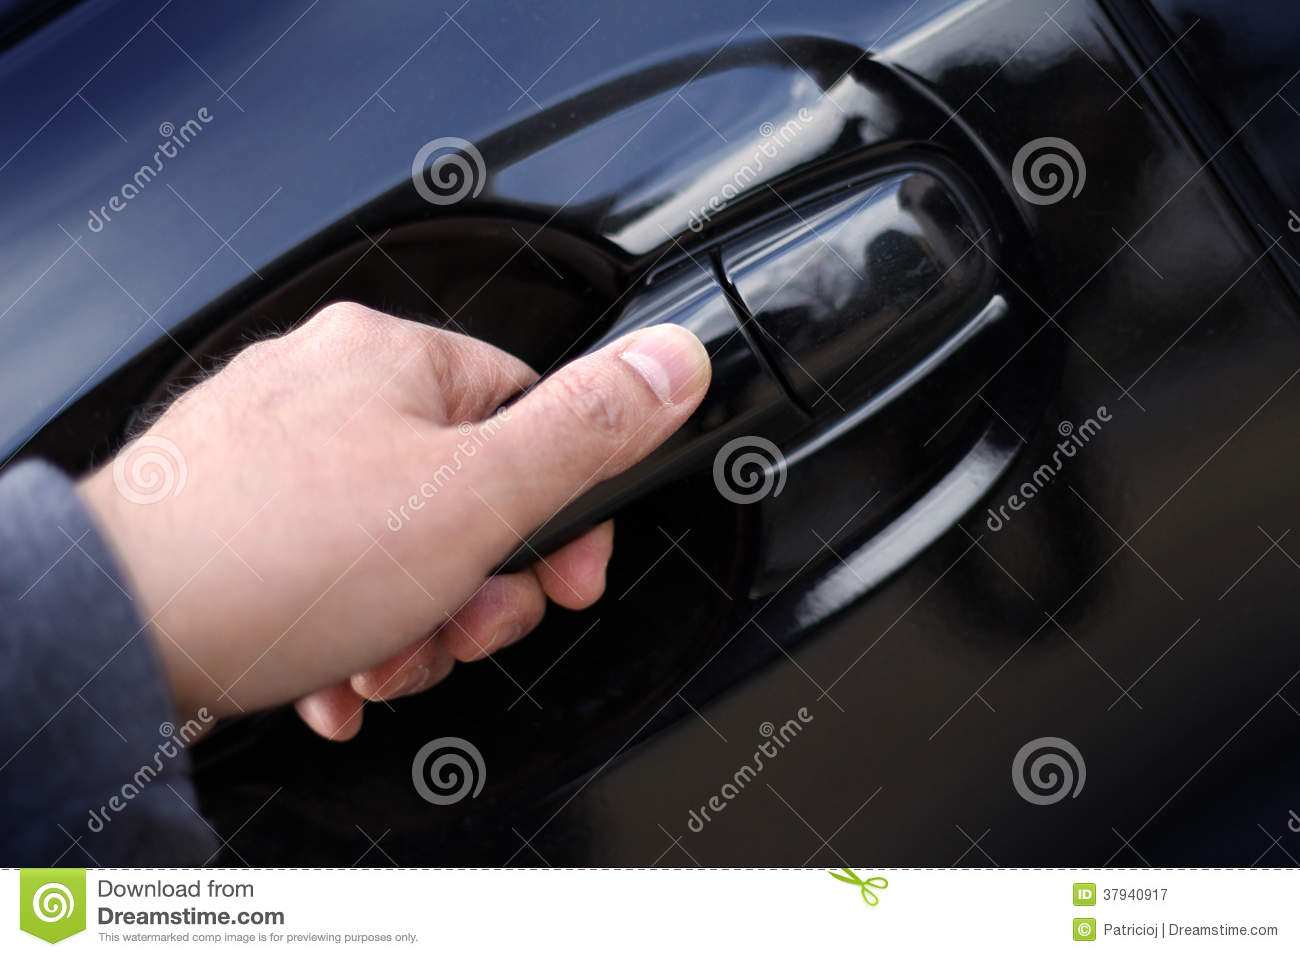 Car door handle hand Chrome Hand Opening Car Door Handle Dreamstimecom Hand Opening Car Door Handle Stock Image Image Of Concepts